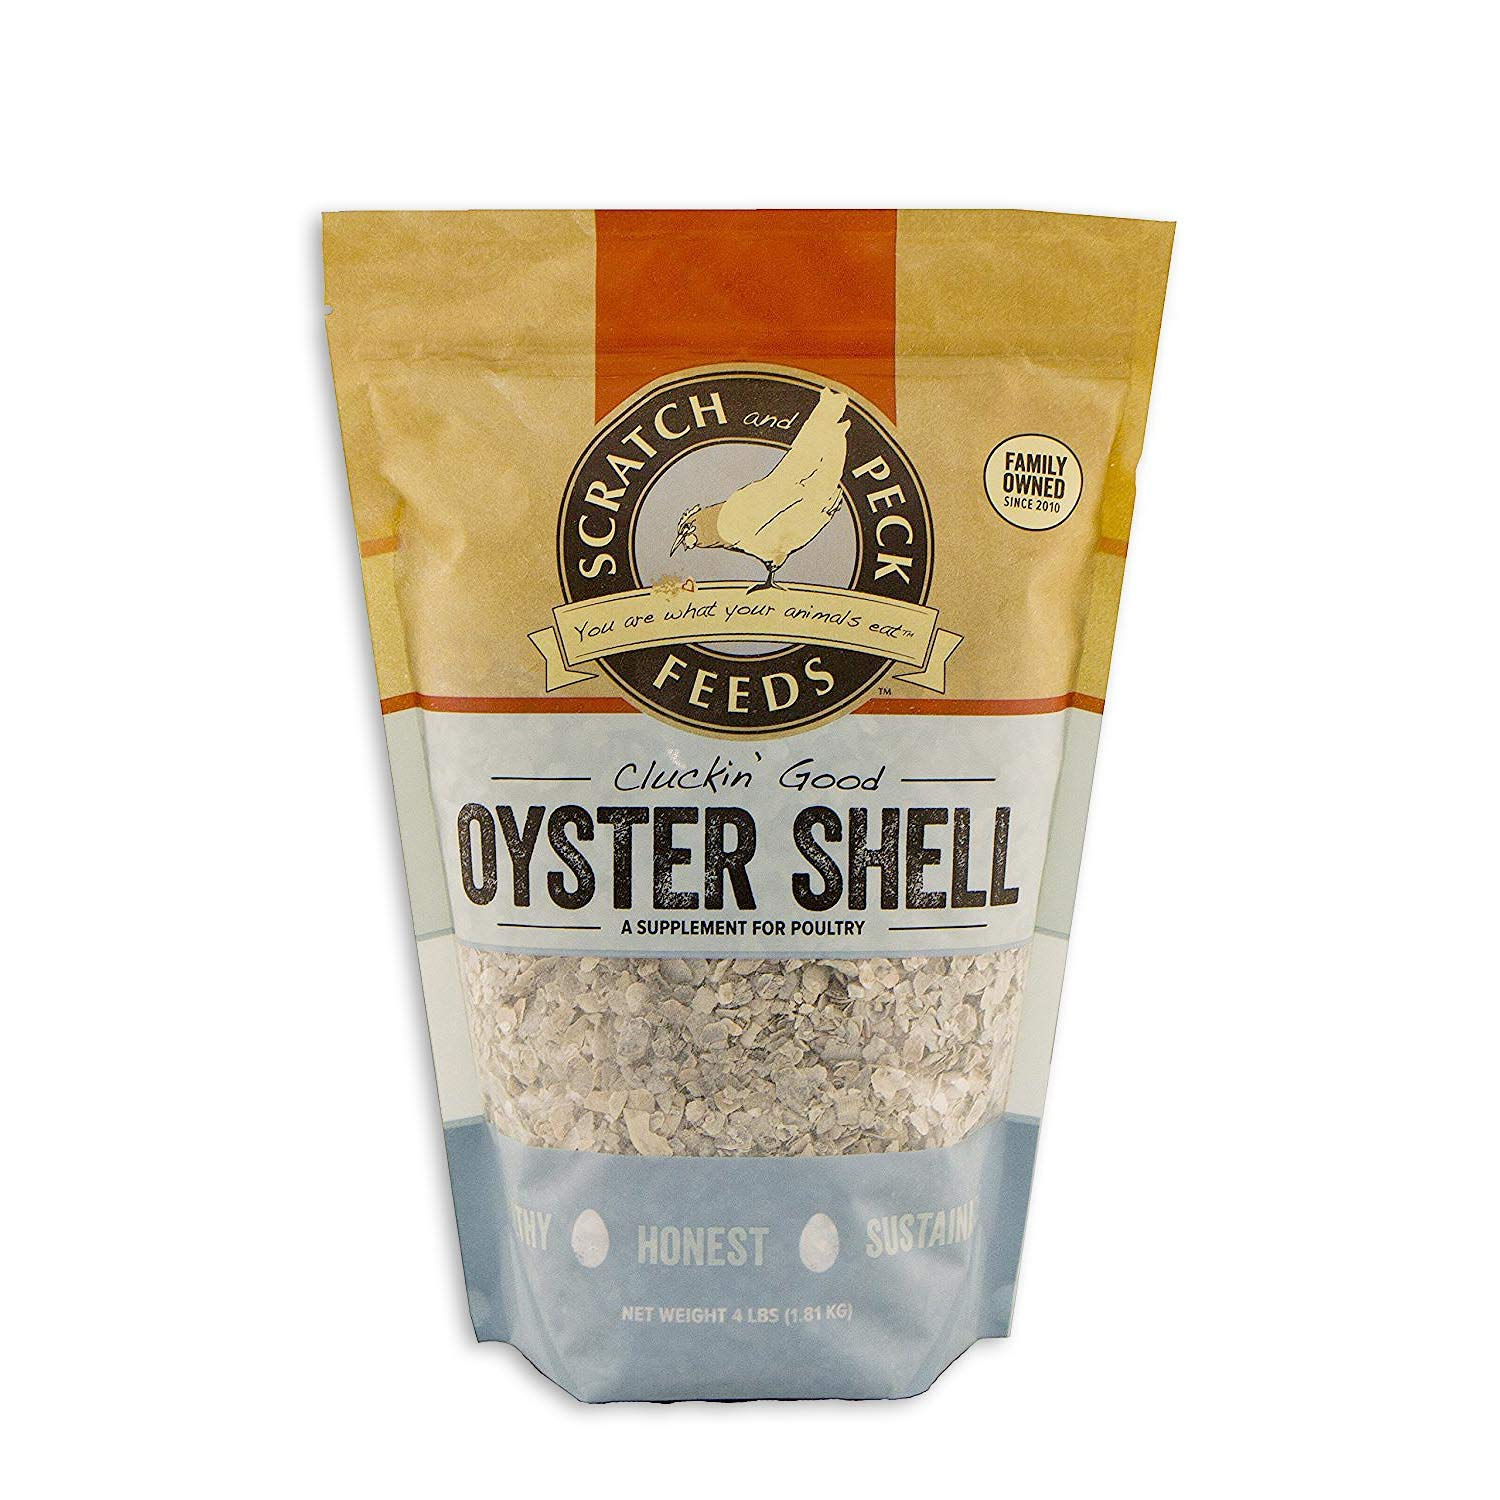 Scratch and Peck Feeds - Cluckin' Good Oyster Shell Supplement for Chickens and Ducks - Flaked - 4-lbs by SCRATCH AND PECK FEEDS YOU ARE WHAT YOUR ANIMALS EAT